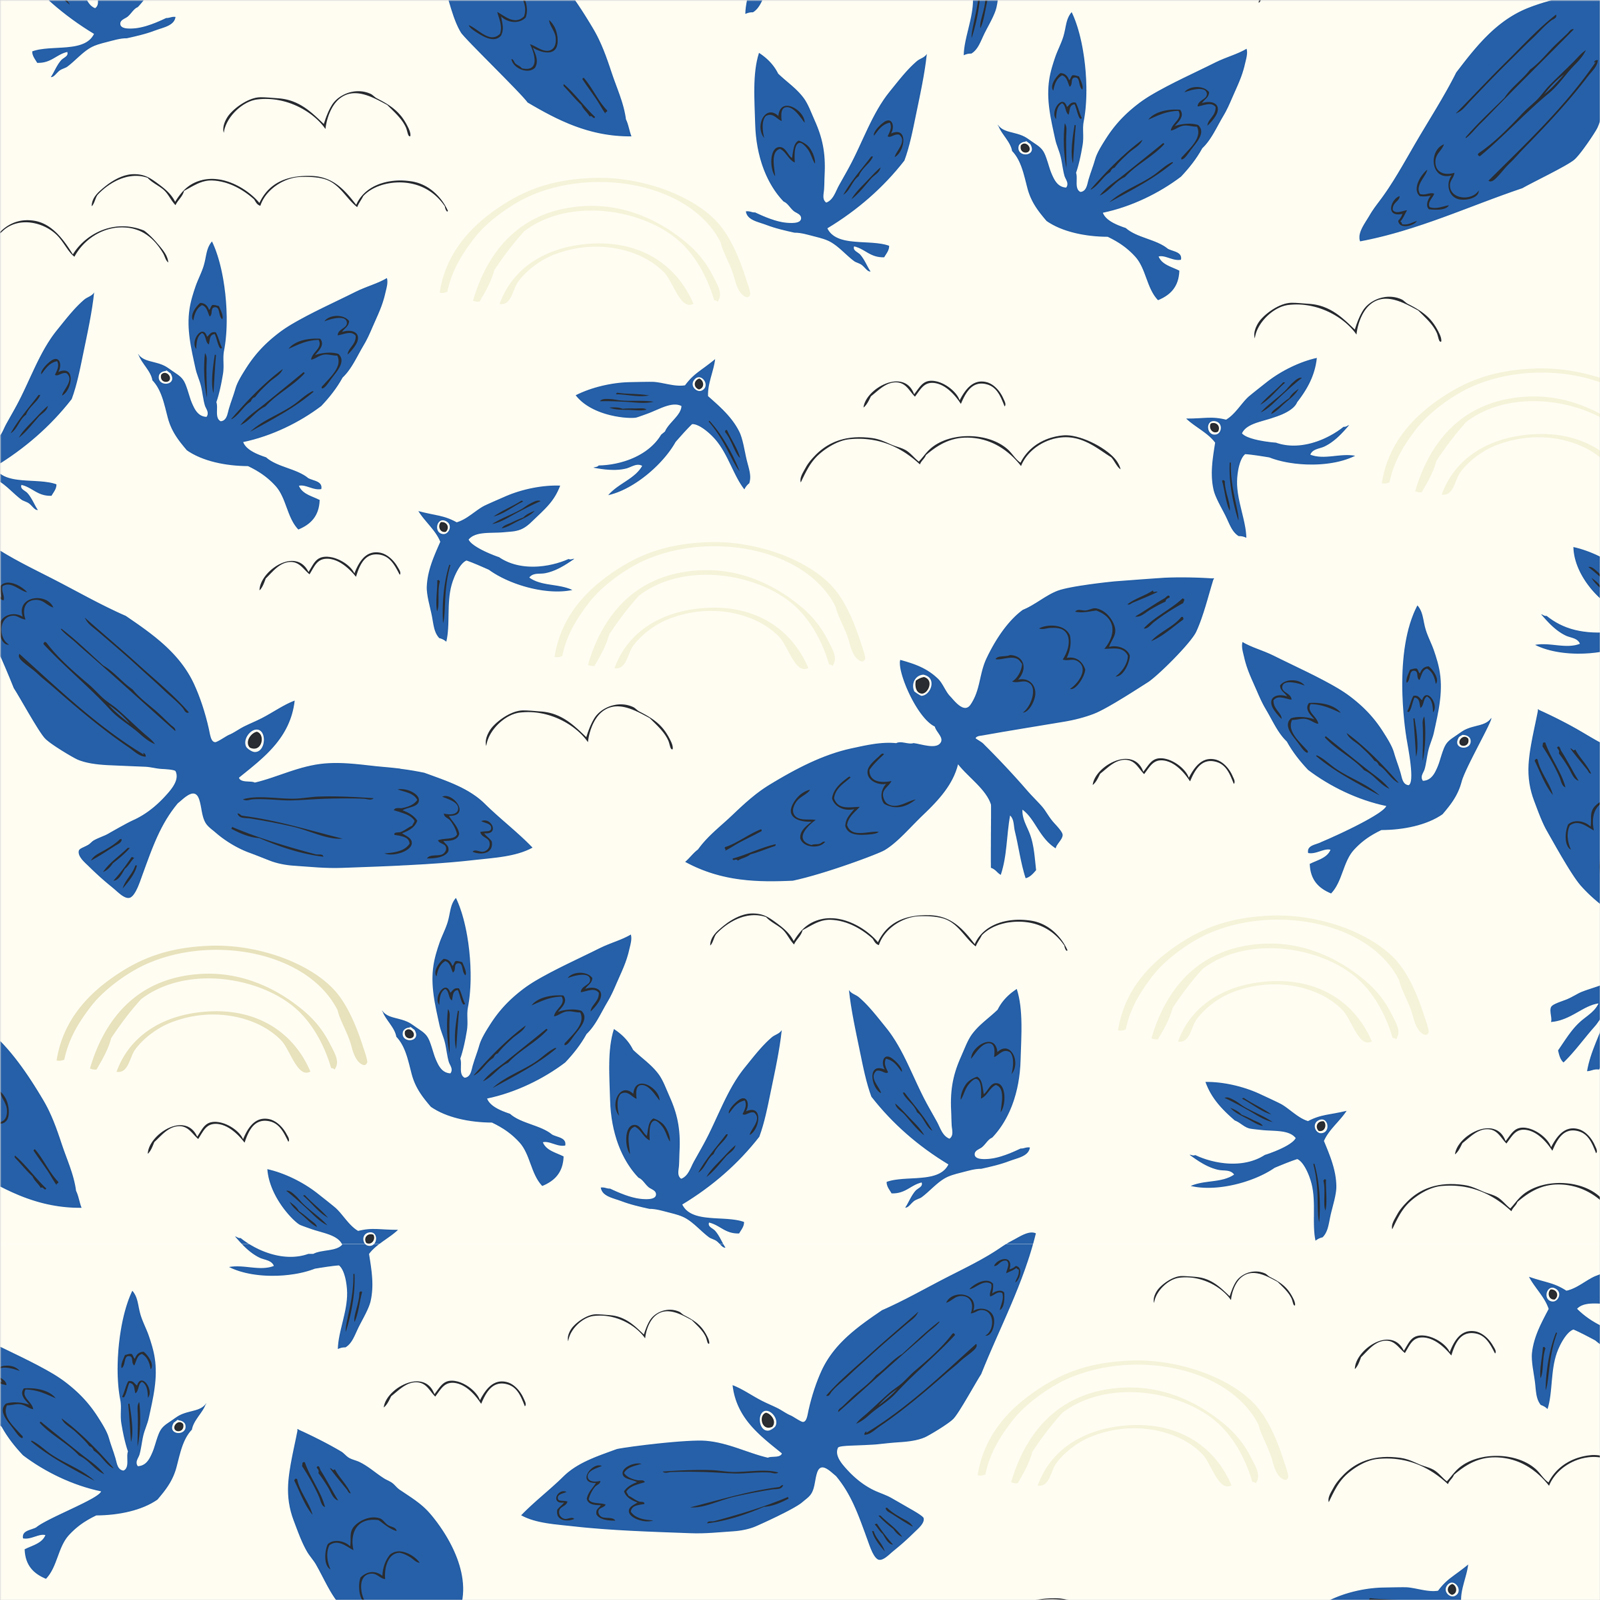 No Place Like Home - Blue Birds Fly - Cloud 9 Organic Cotton